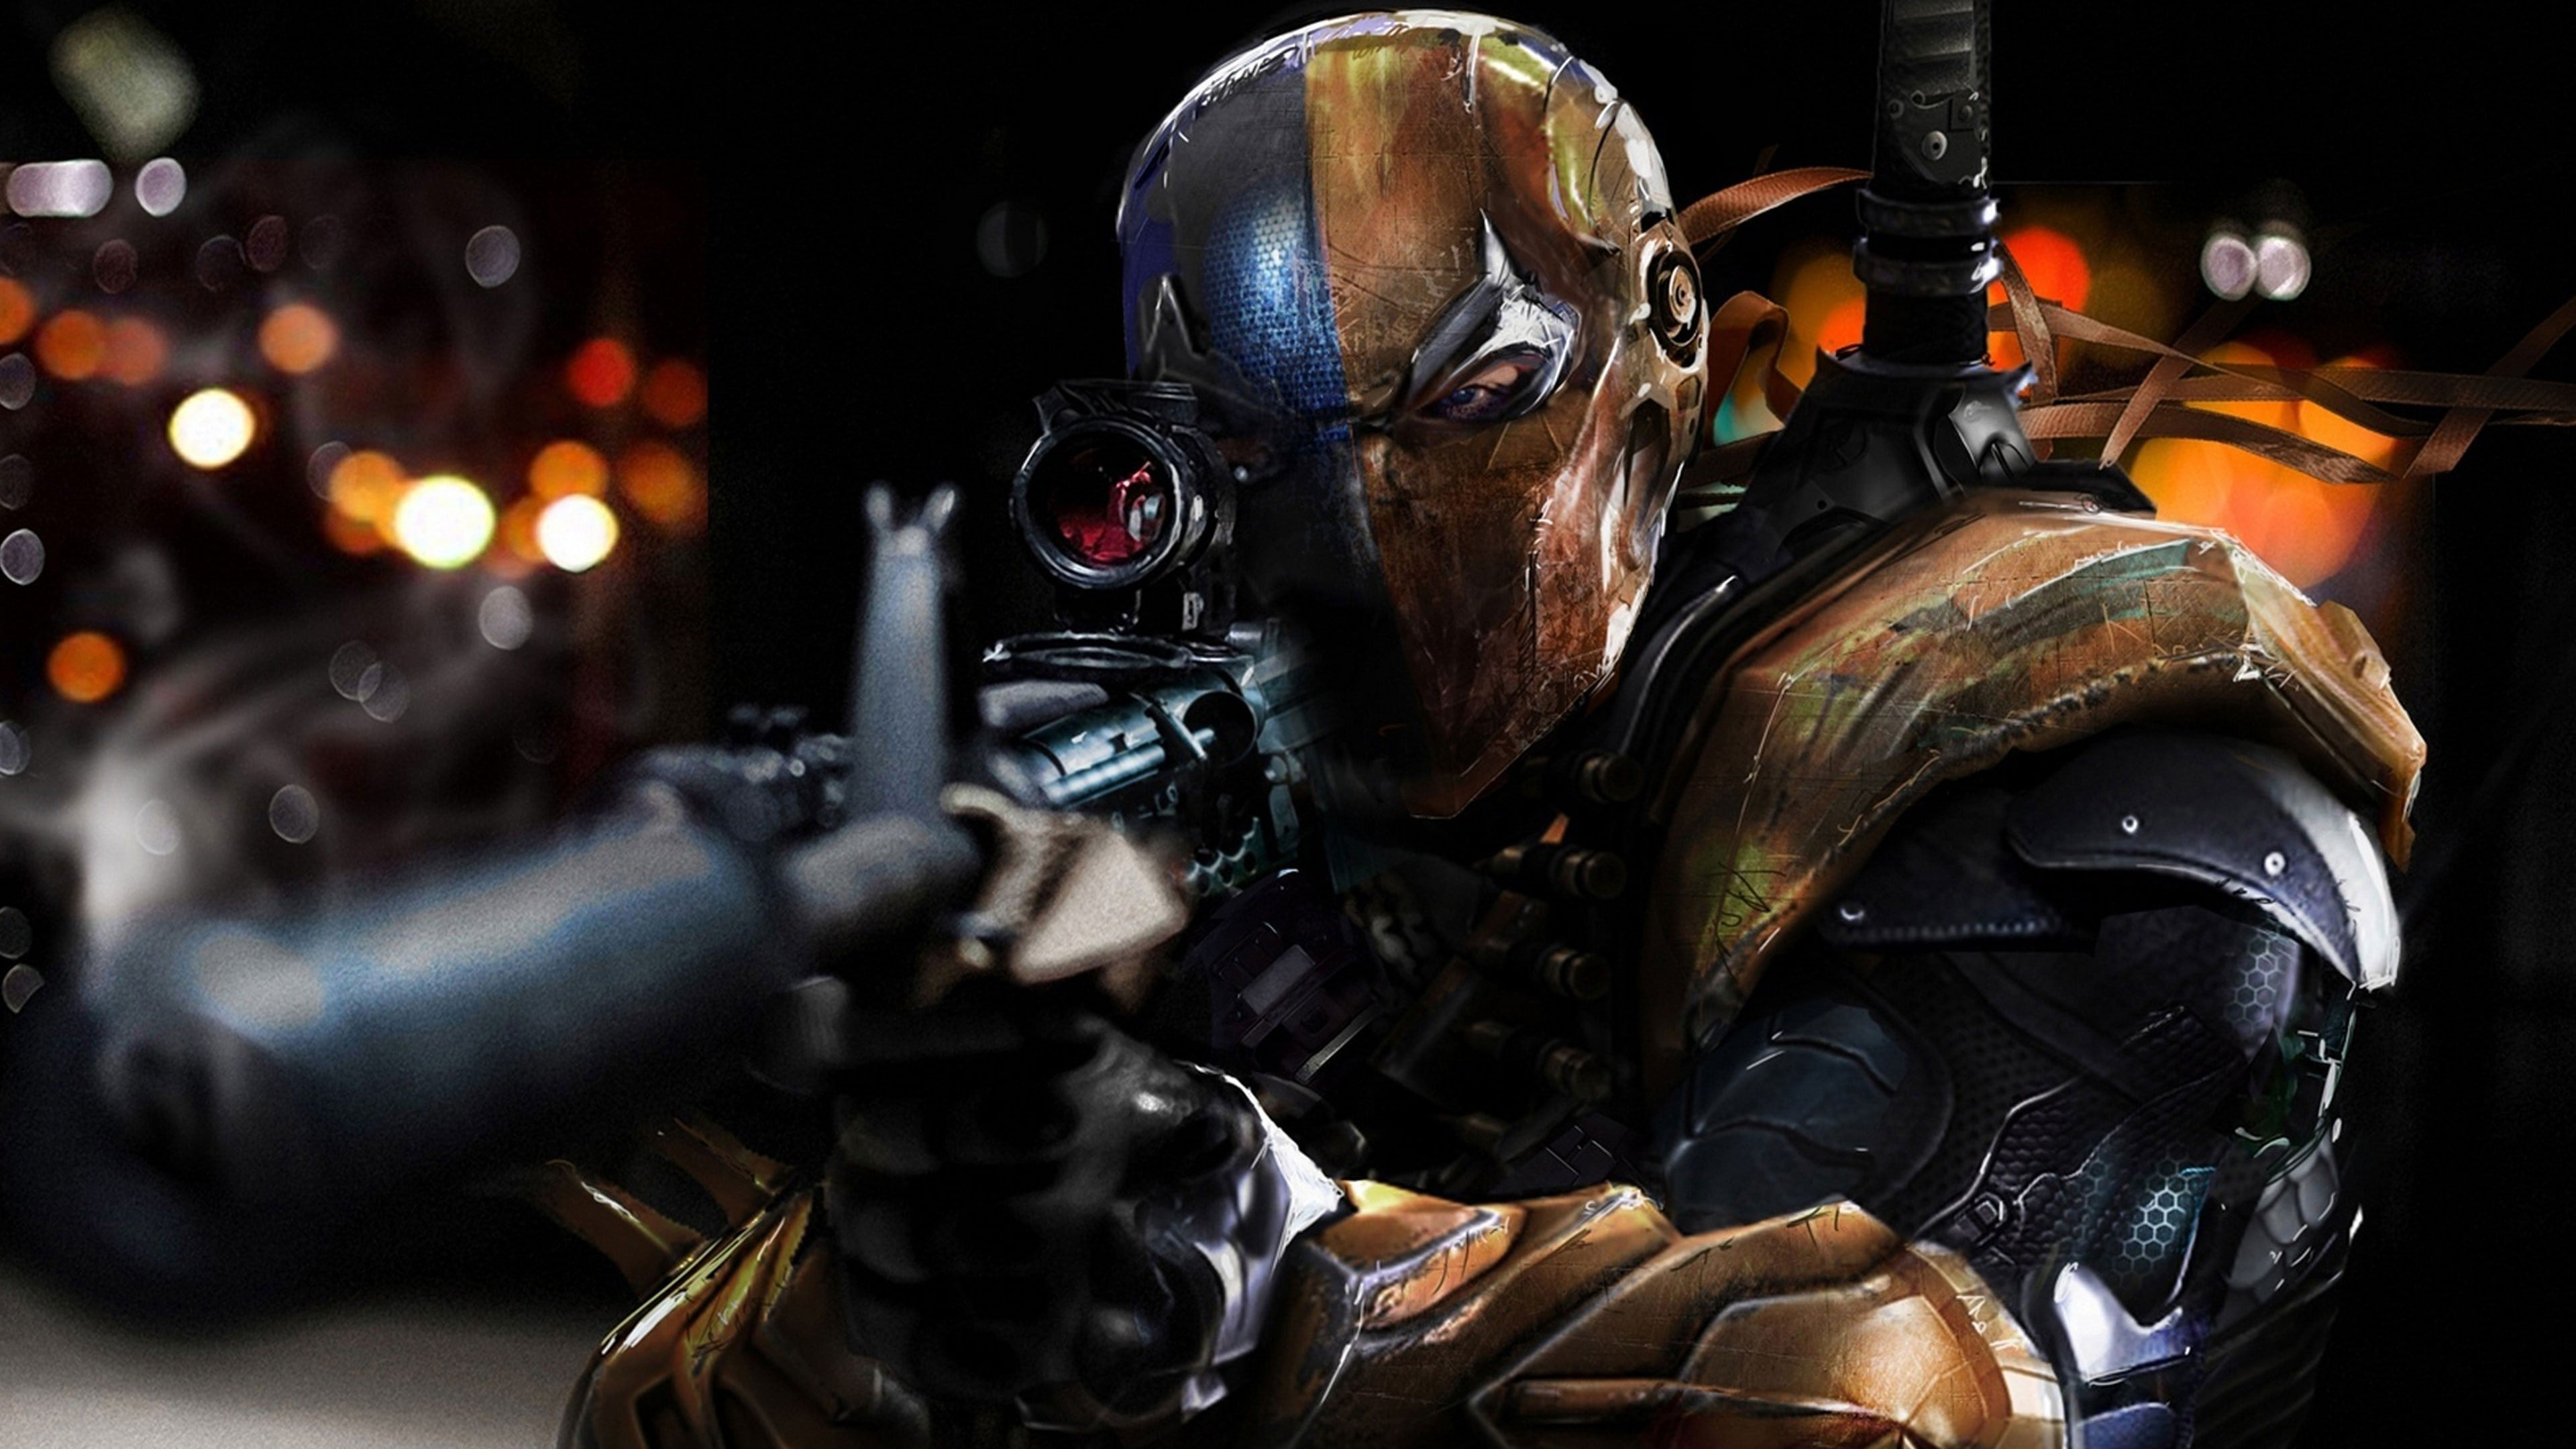 4k Gaming Wallpaper Deathstroke Batman Arkham Origins